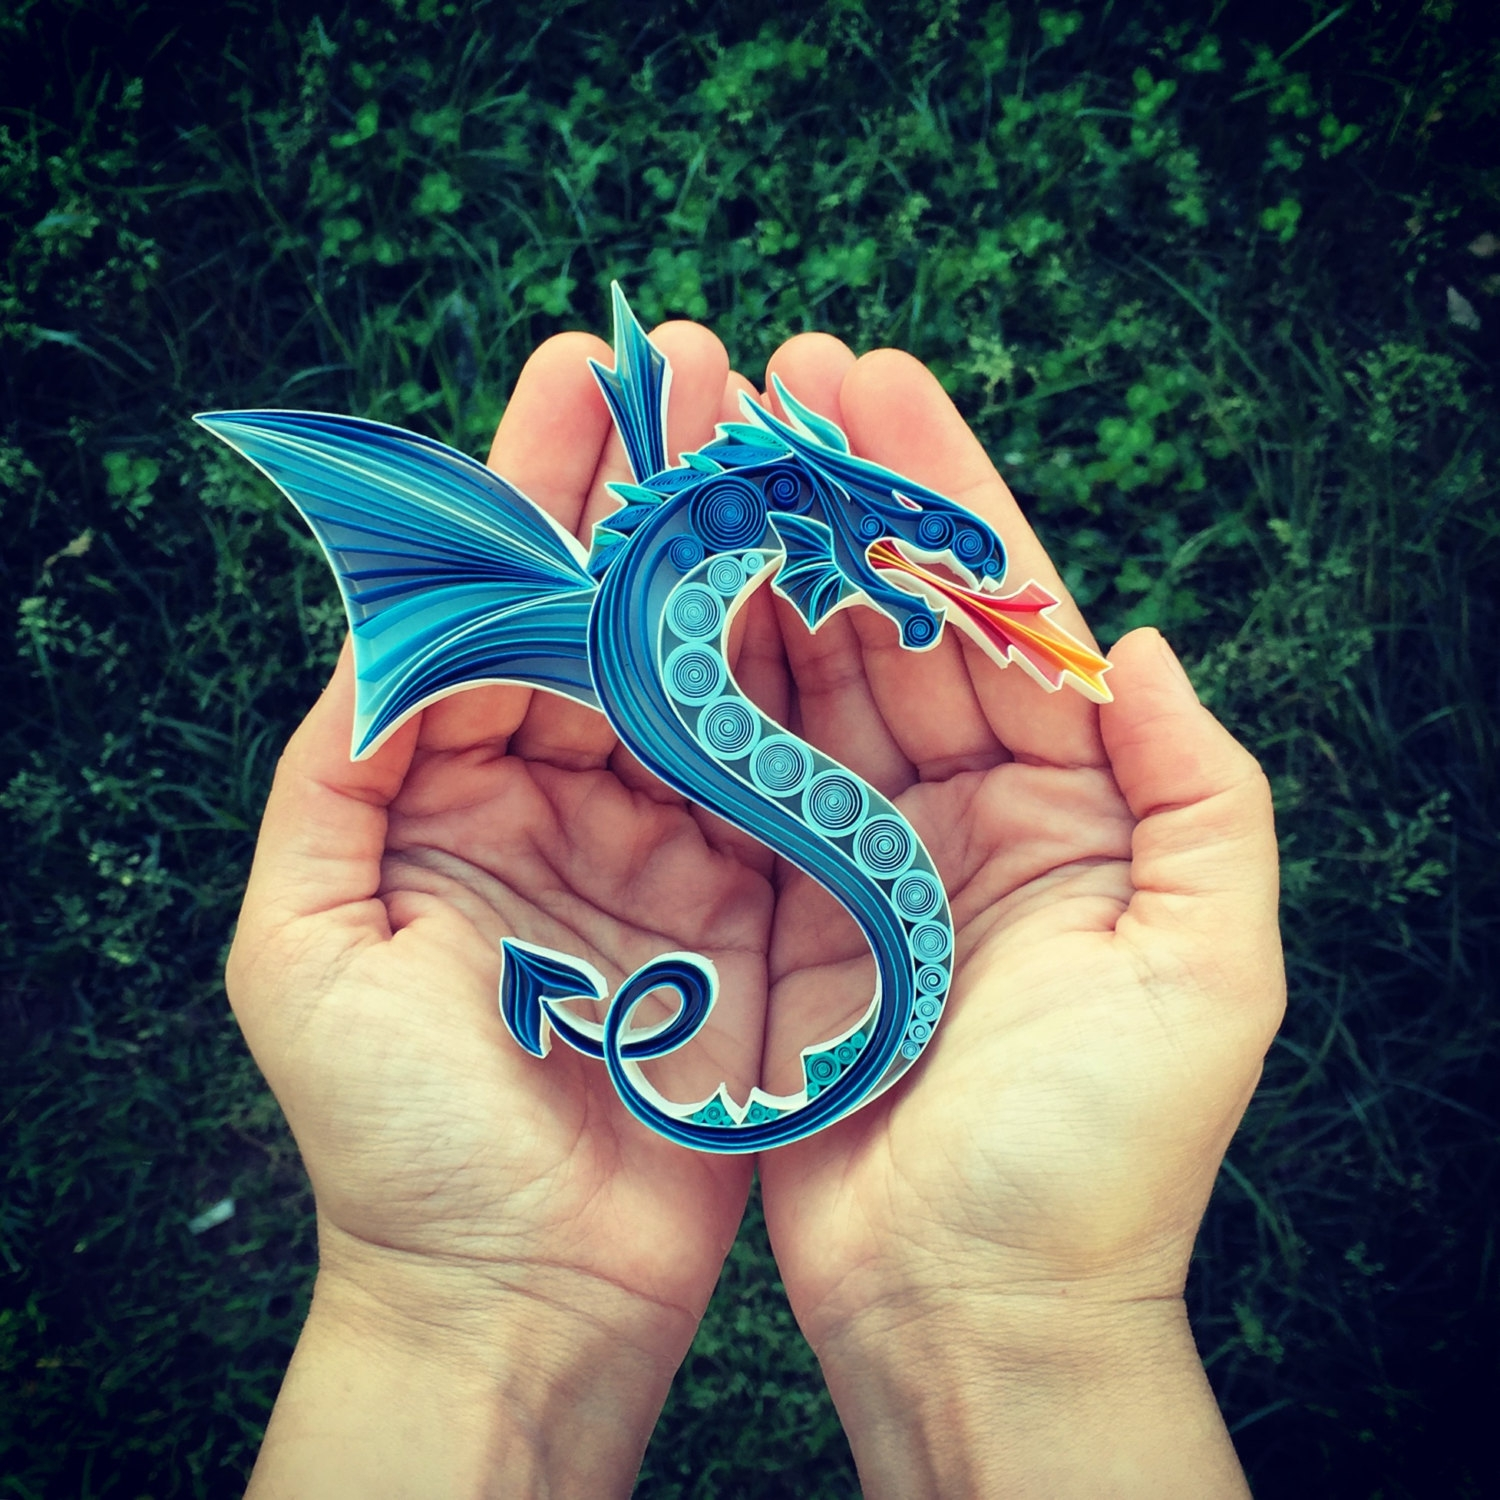 01-Fire-Breathing-Dragon-Sena-Runa-Beautiful-Designs-Accomplished-with-Paper-Quilling-Art-www-designstack-co